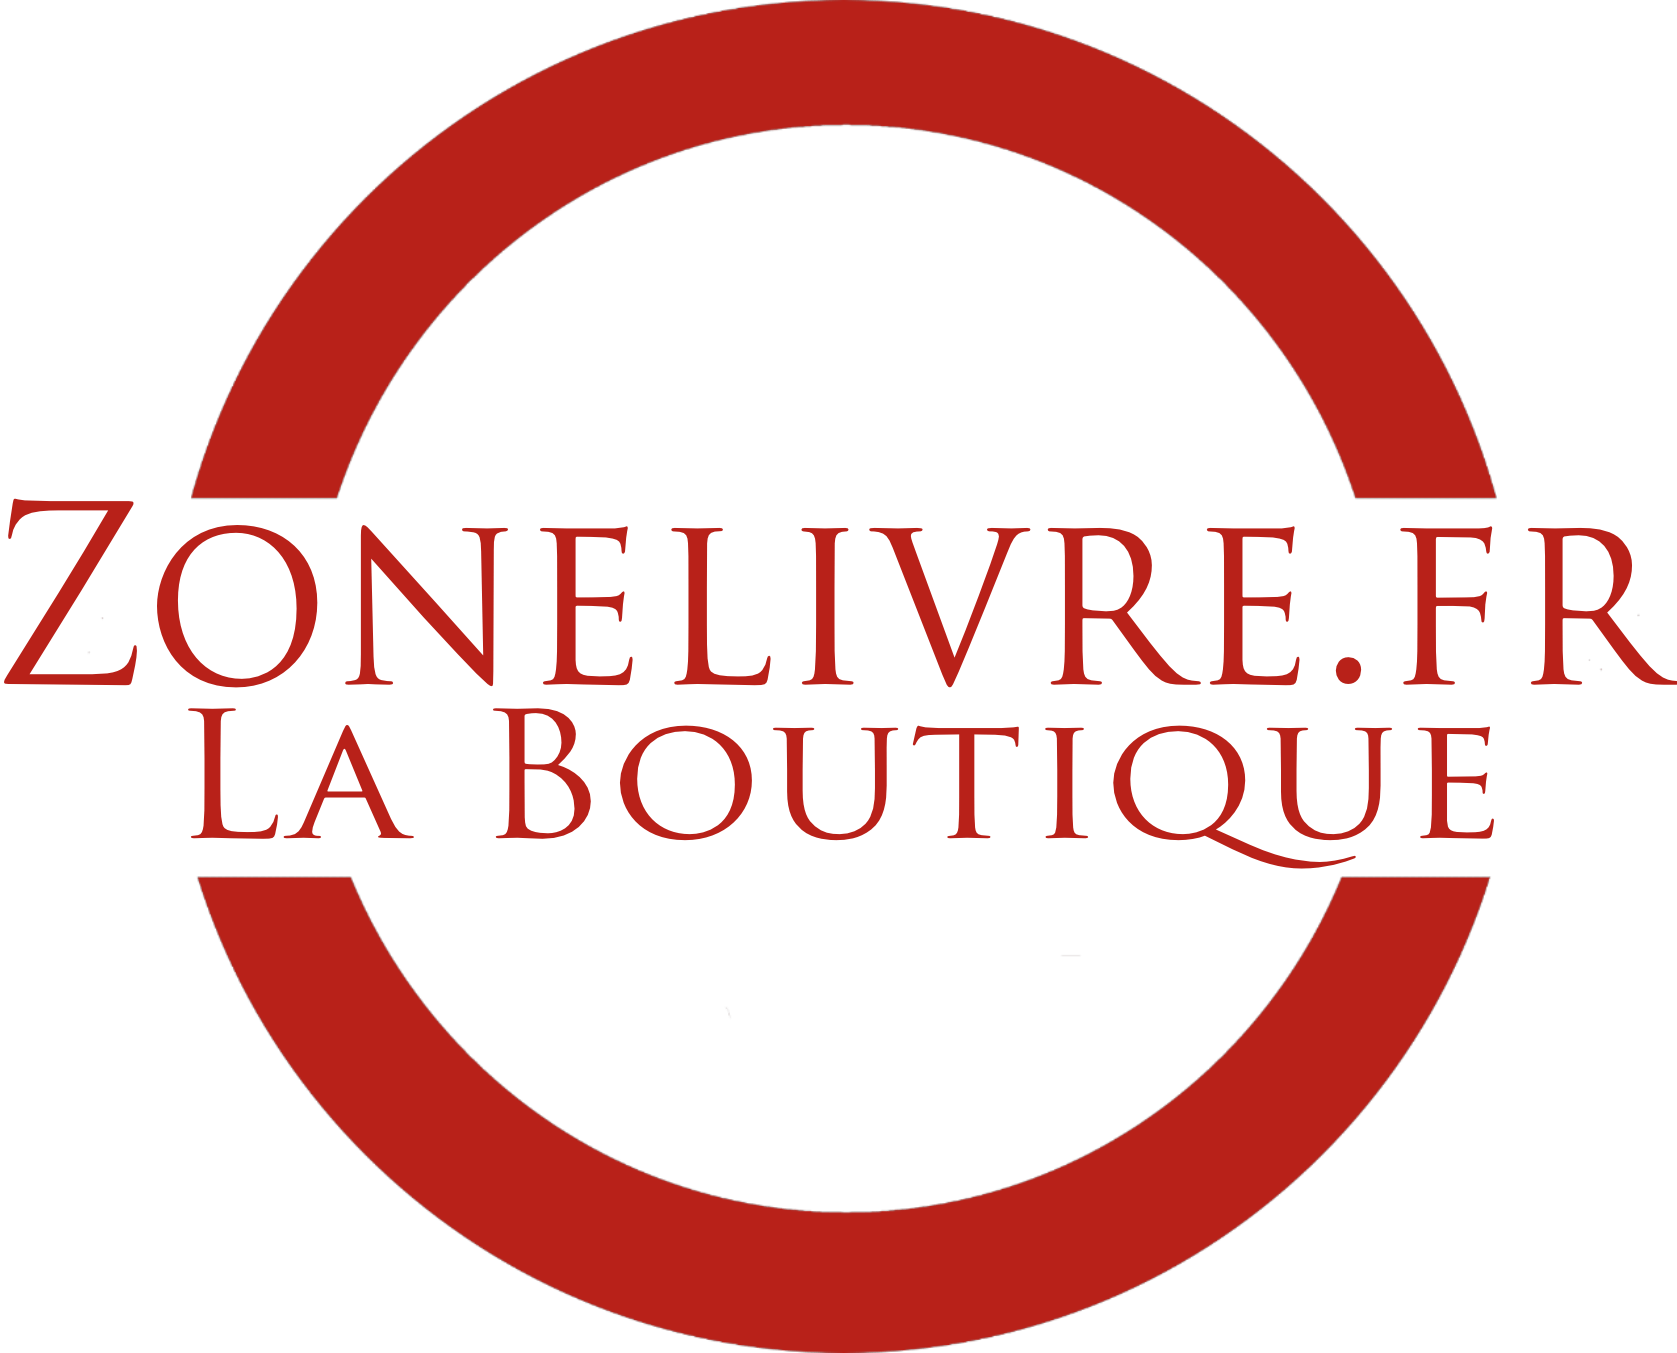 Zonelivre Association boutique